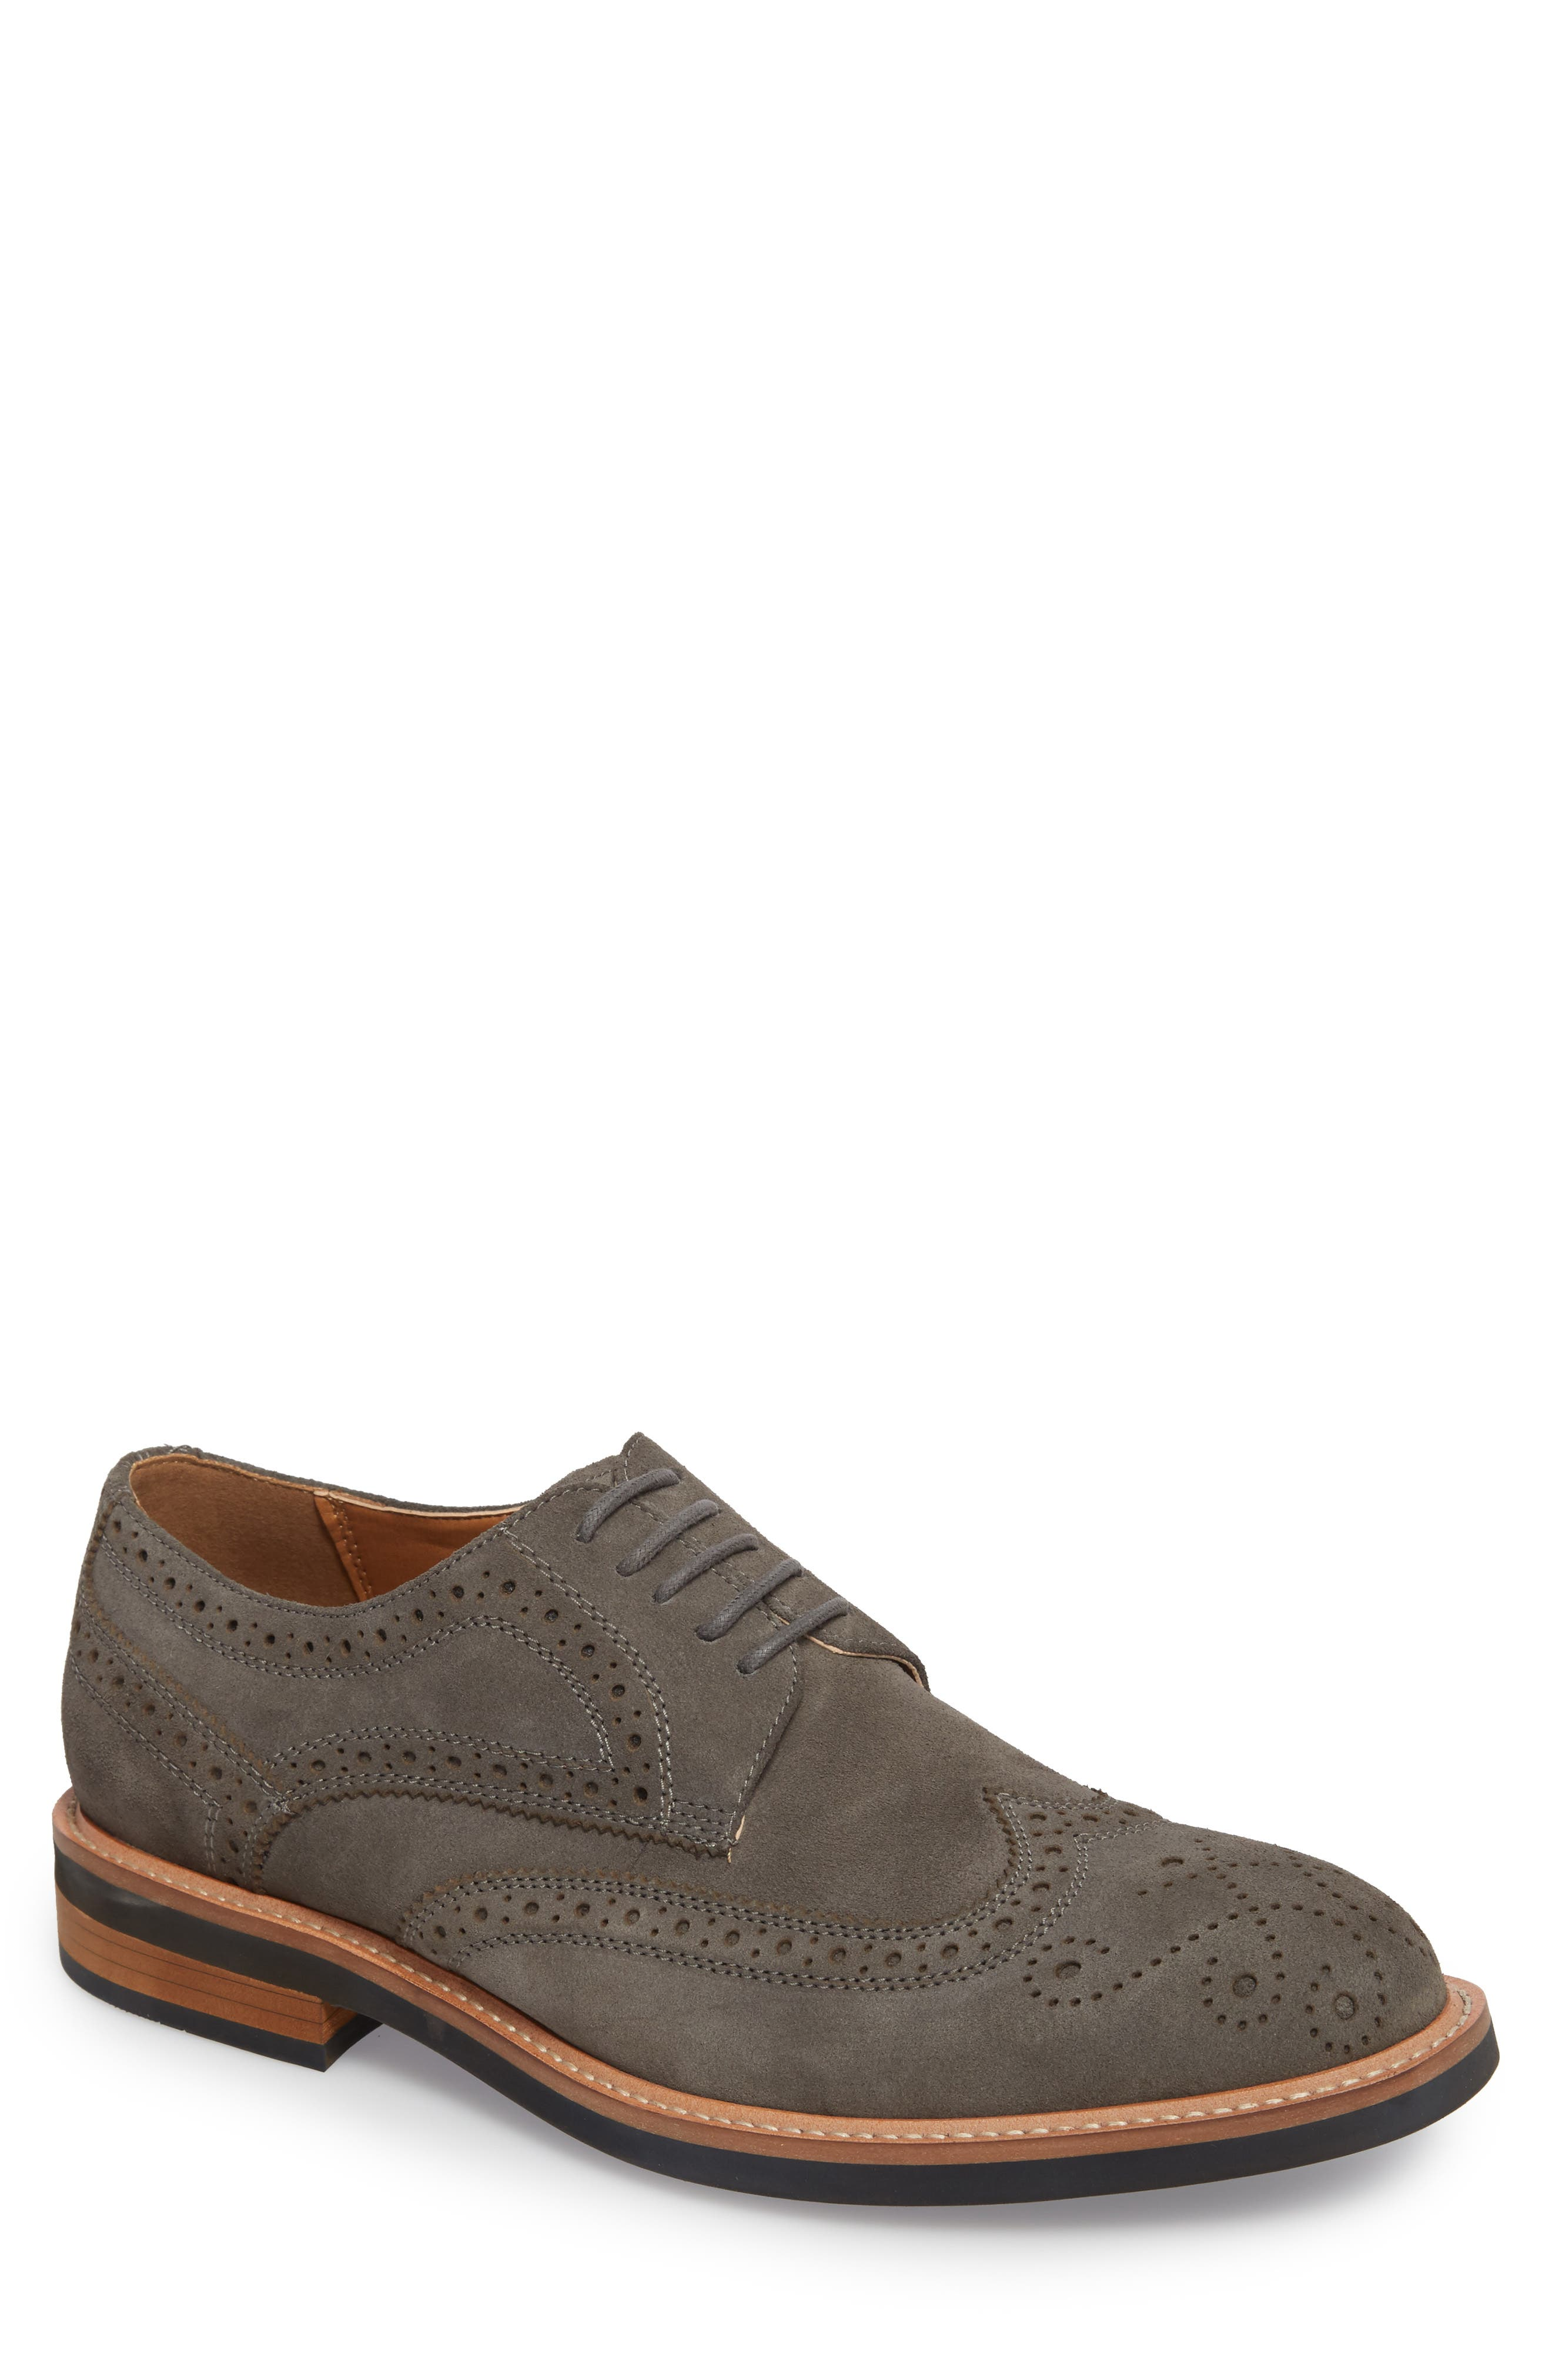 Kenneth Cole Reaction Wingtip,                         Main,                         color, Grey